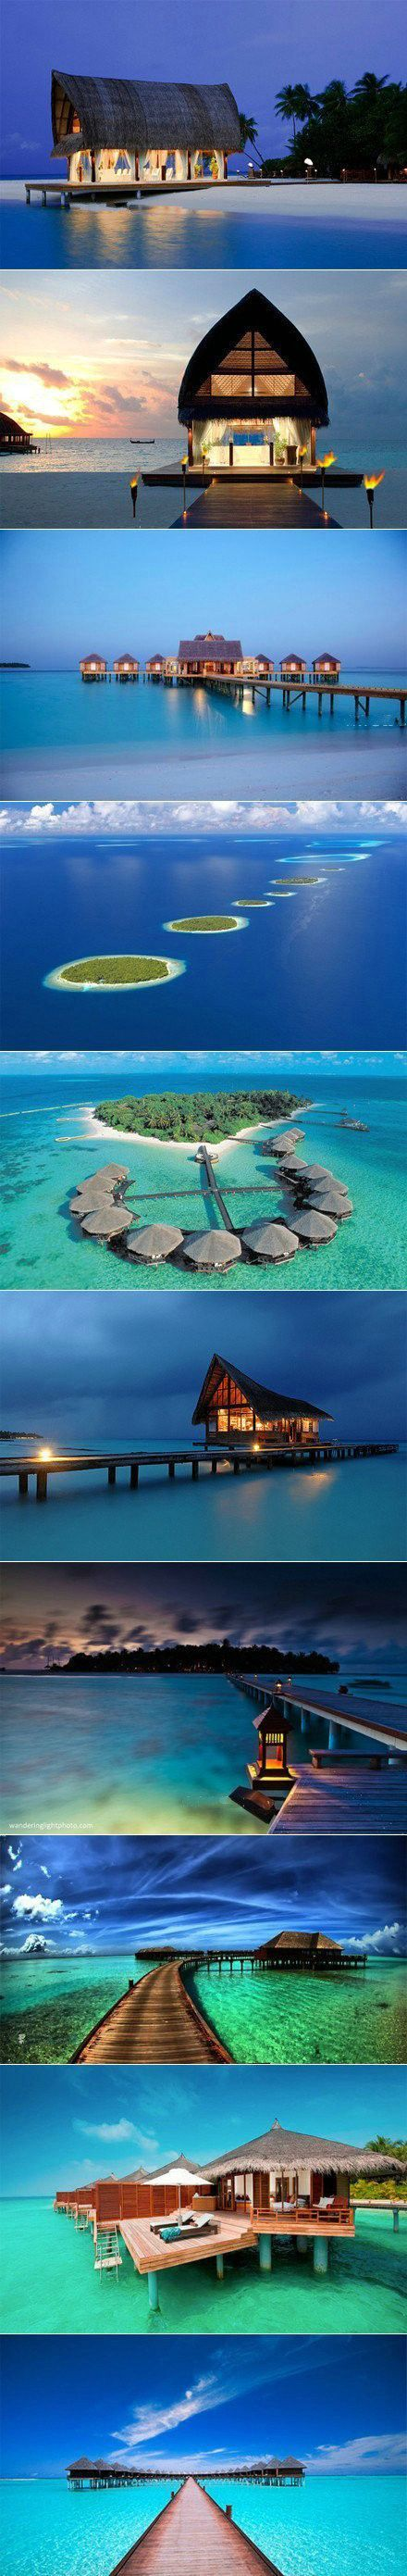 #Maldives - Best place to explore beauty of beaches. Plan your #trip to #Maldives.